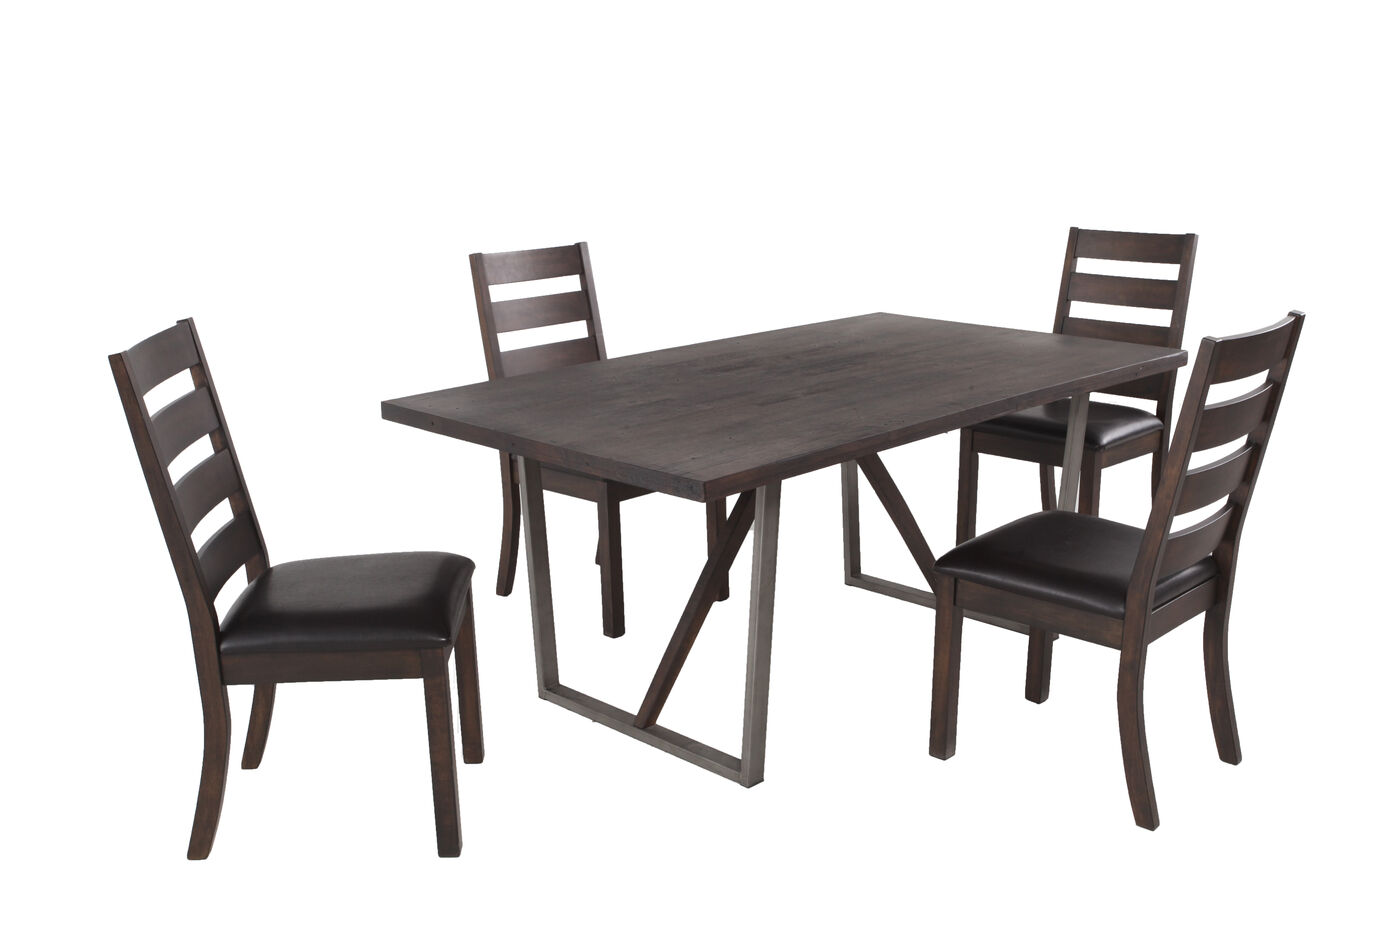 Mathis brothers dining room tables and chairs mathis for Dining room table only